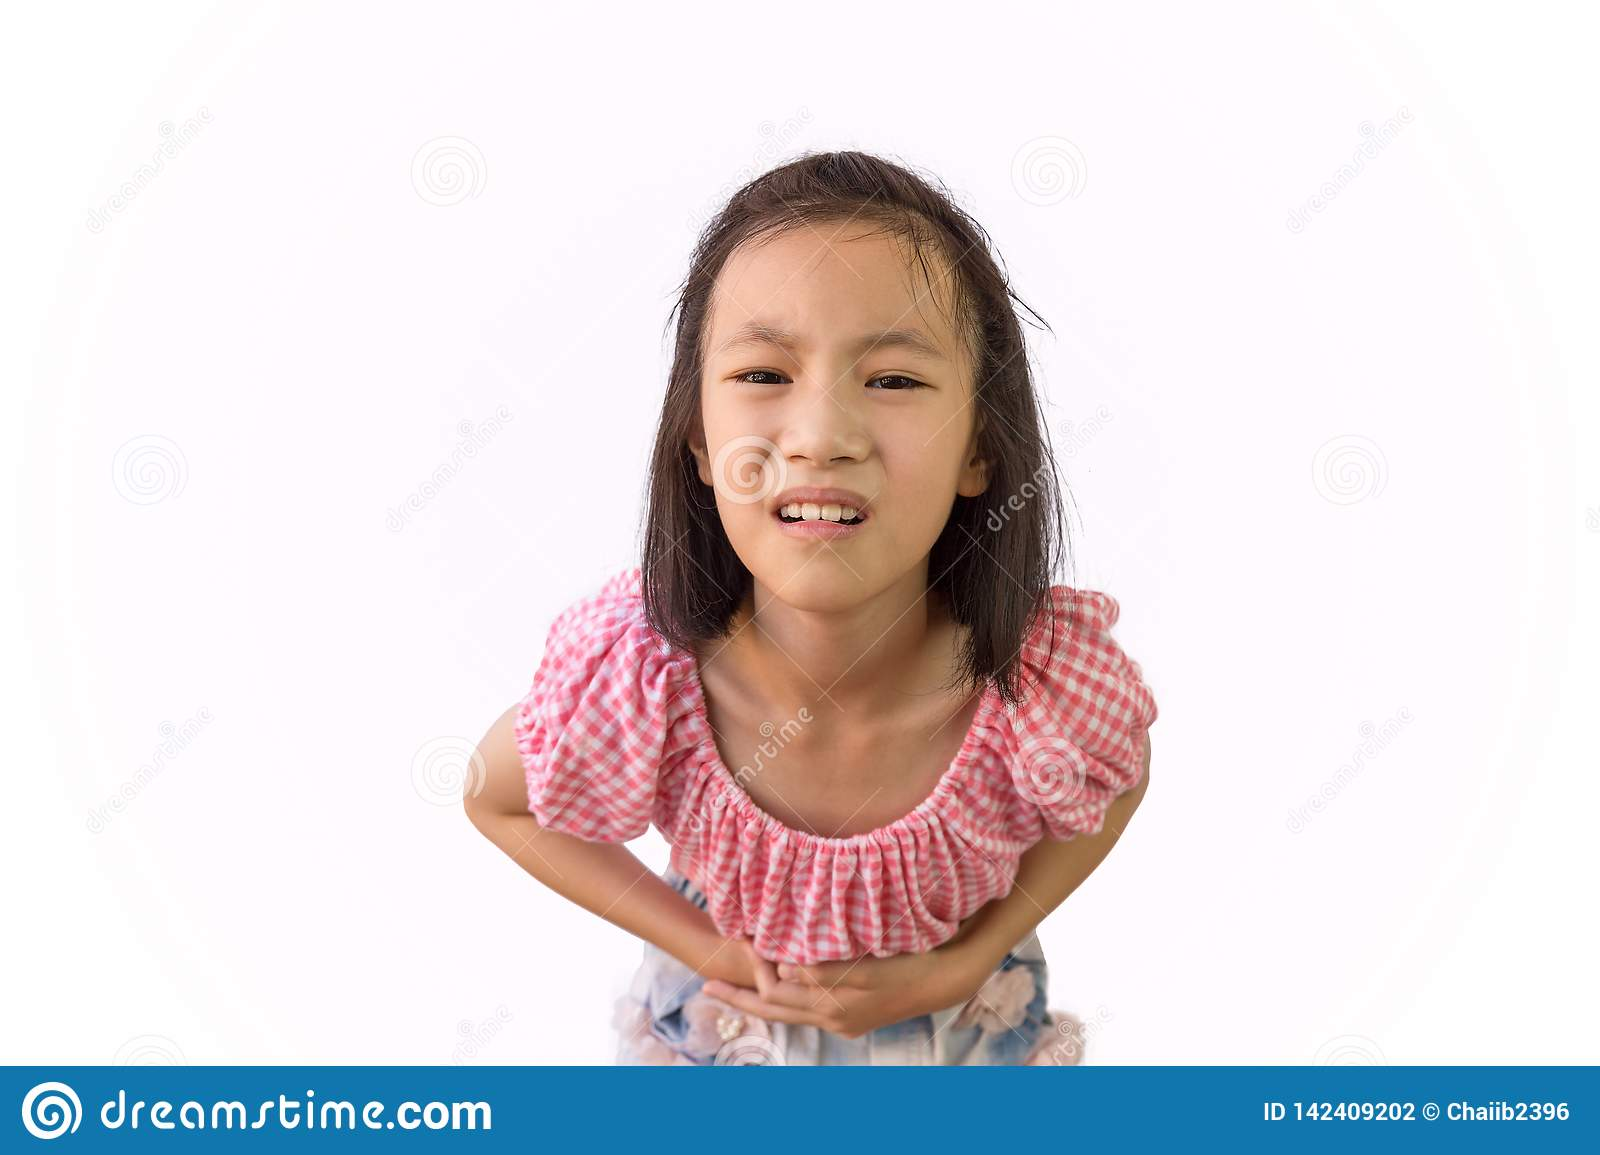 Asian Little Girl Is Painful Stomach Ache Isolated On White Background,  Child Having Food Poisoning,Sickness And Healthcare Stock Photo - Image of  beautiful, menstrual: 142409202